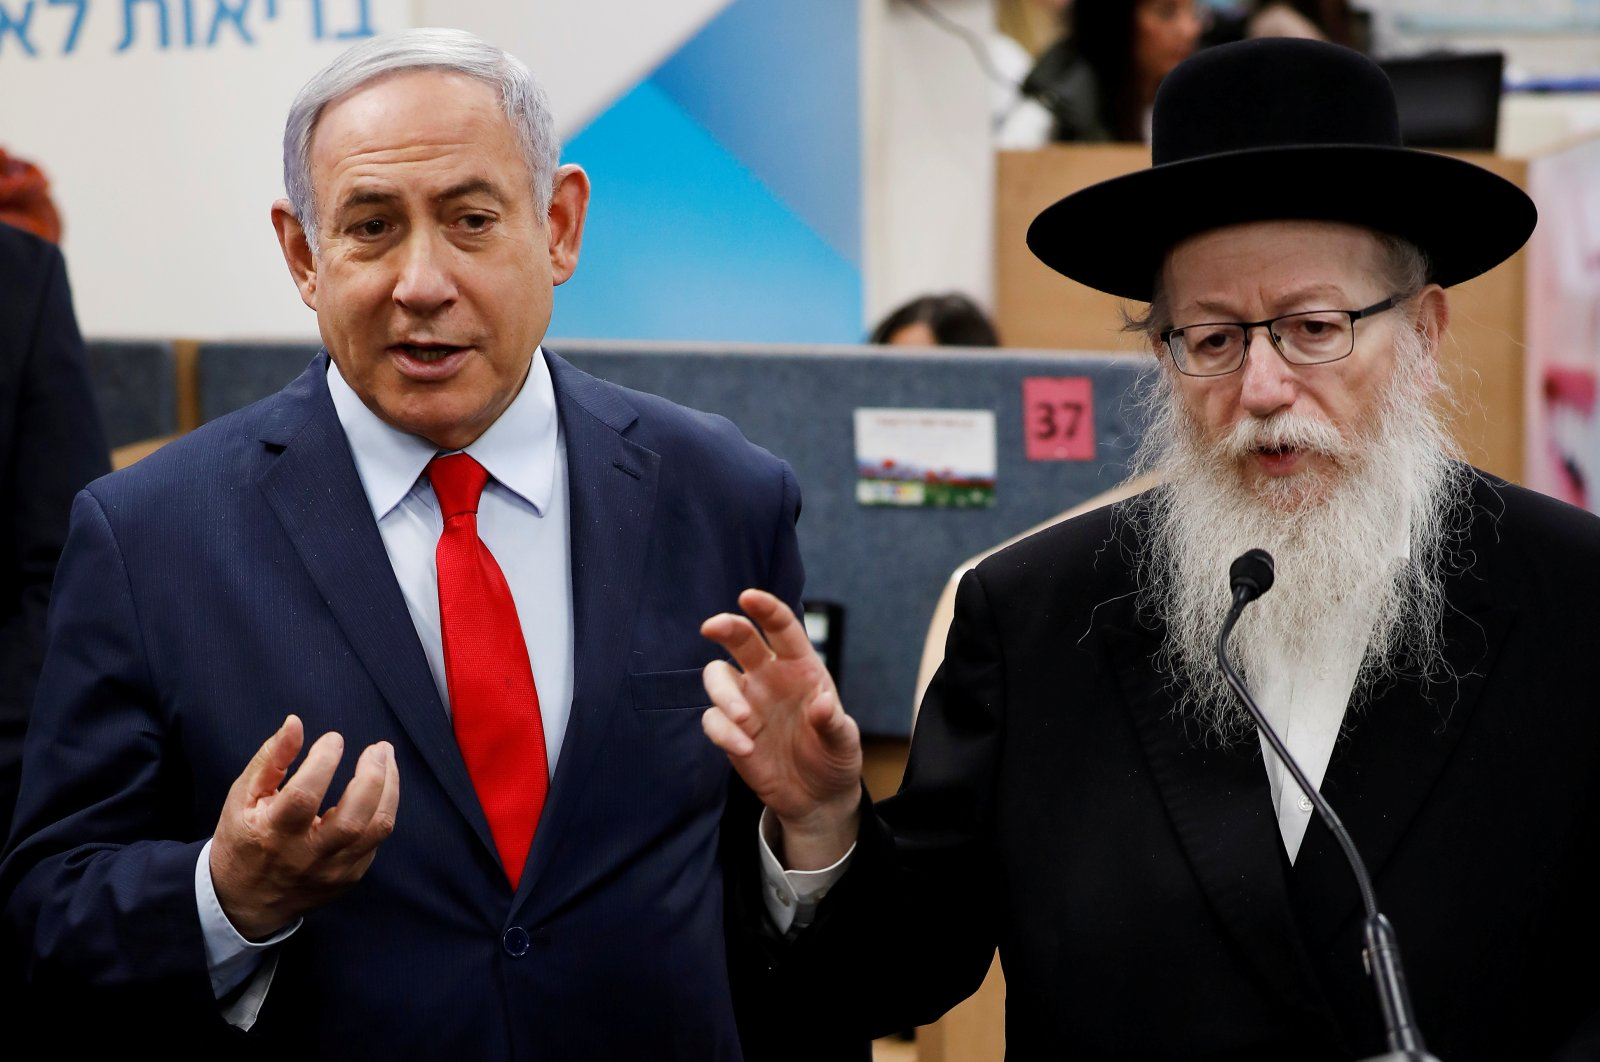 Israeli Prime Minister Benjamin Netanyahu (L) and Health Minister Yaakov Litzman gesture as they deliver statements during a visit to the Health Ministry national hotline, in Kiryat Malachi, Israel, March 1, 2020. (Reuters Photo)